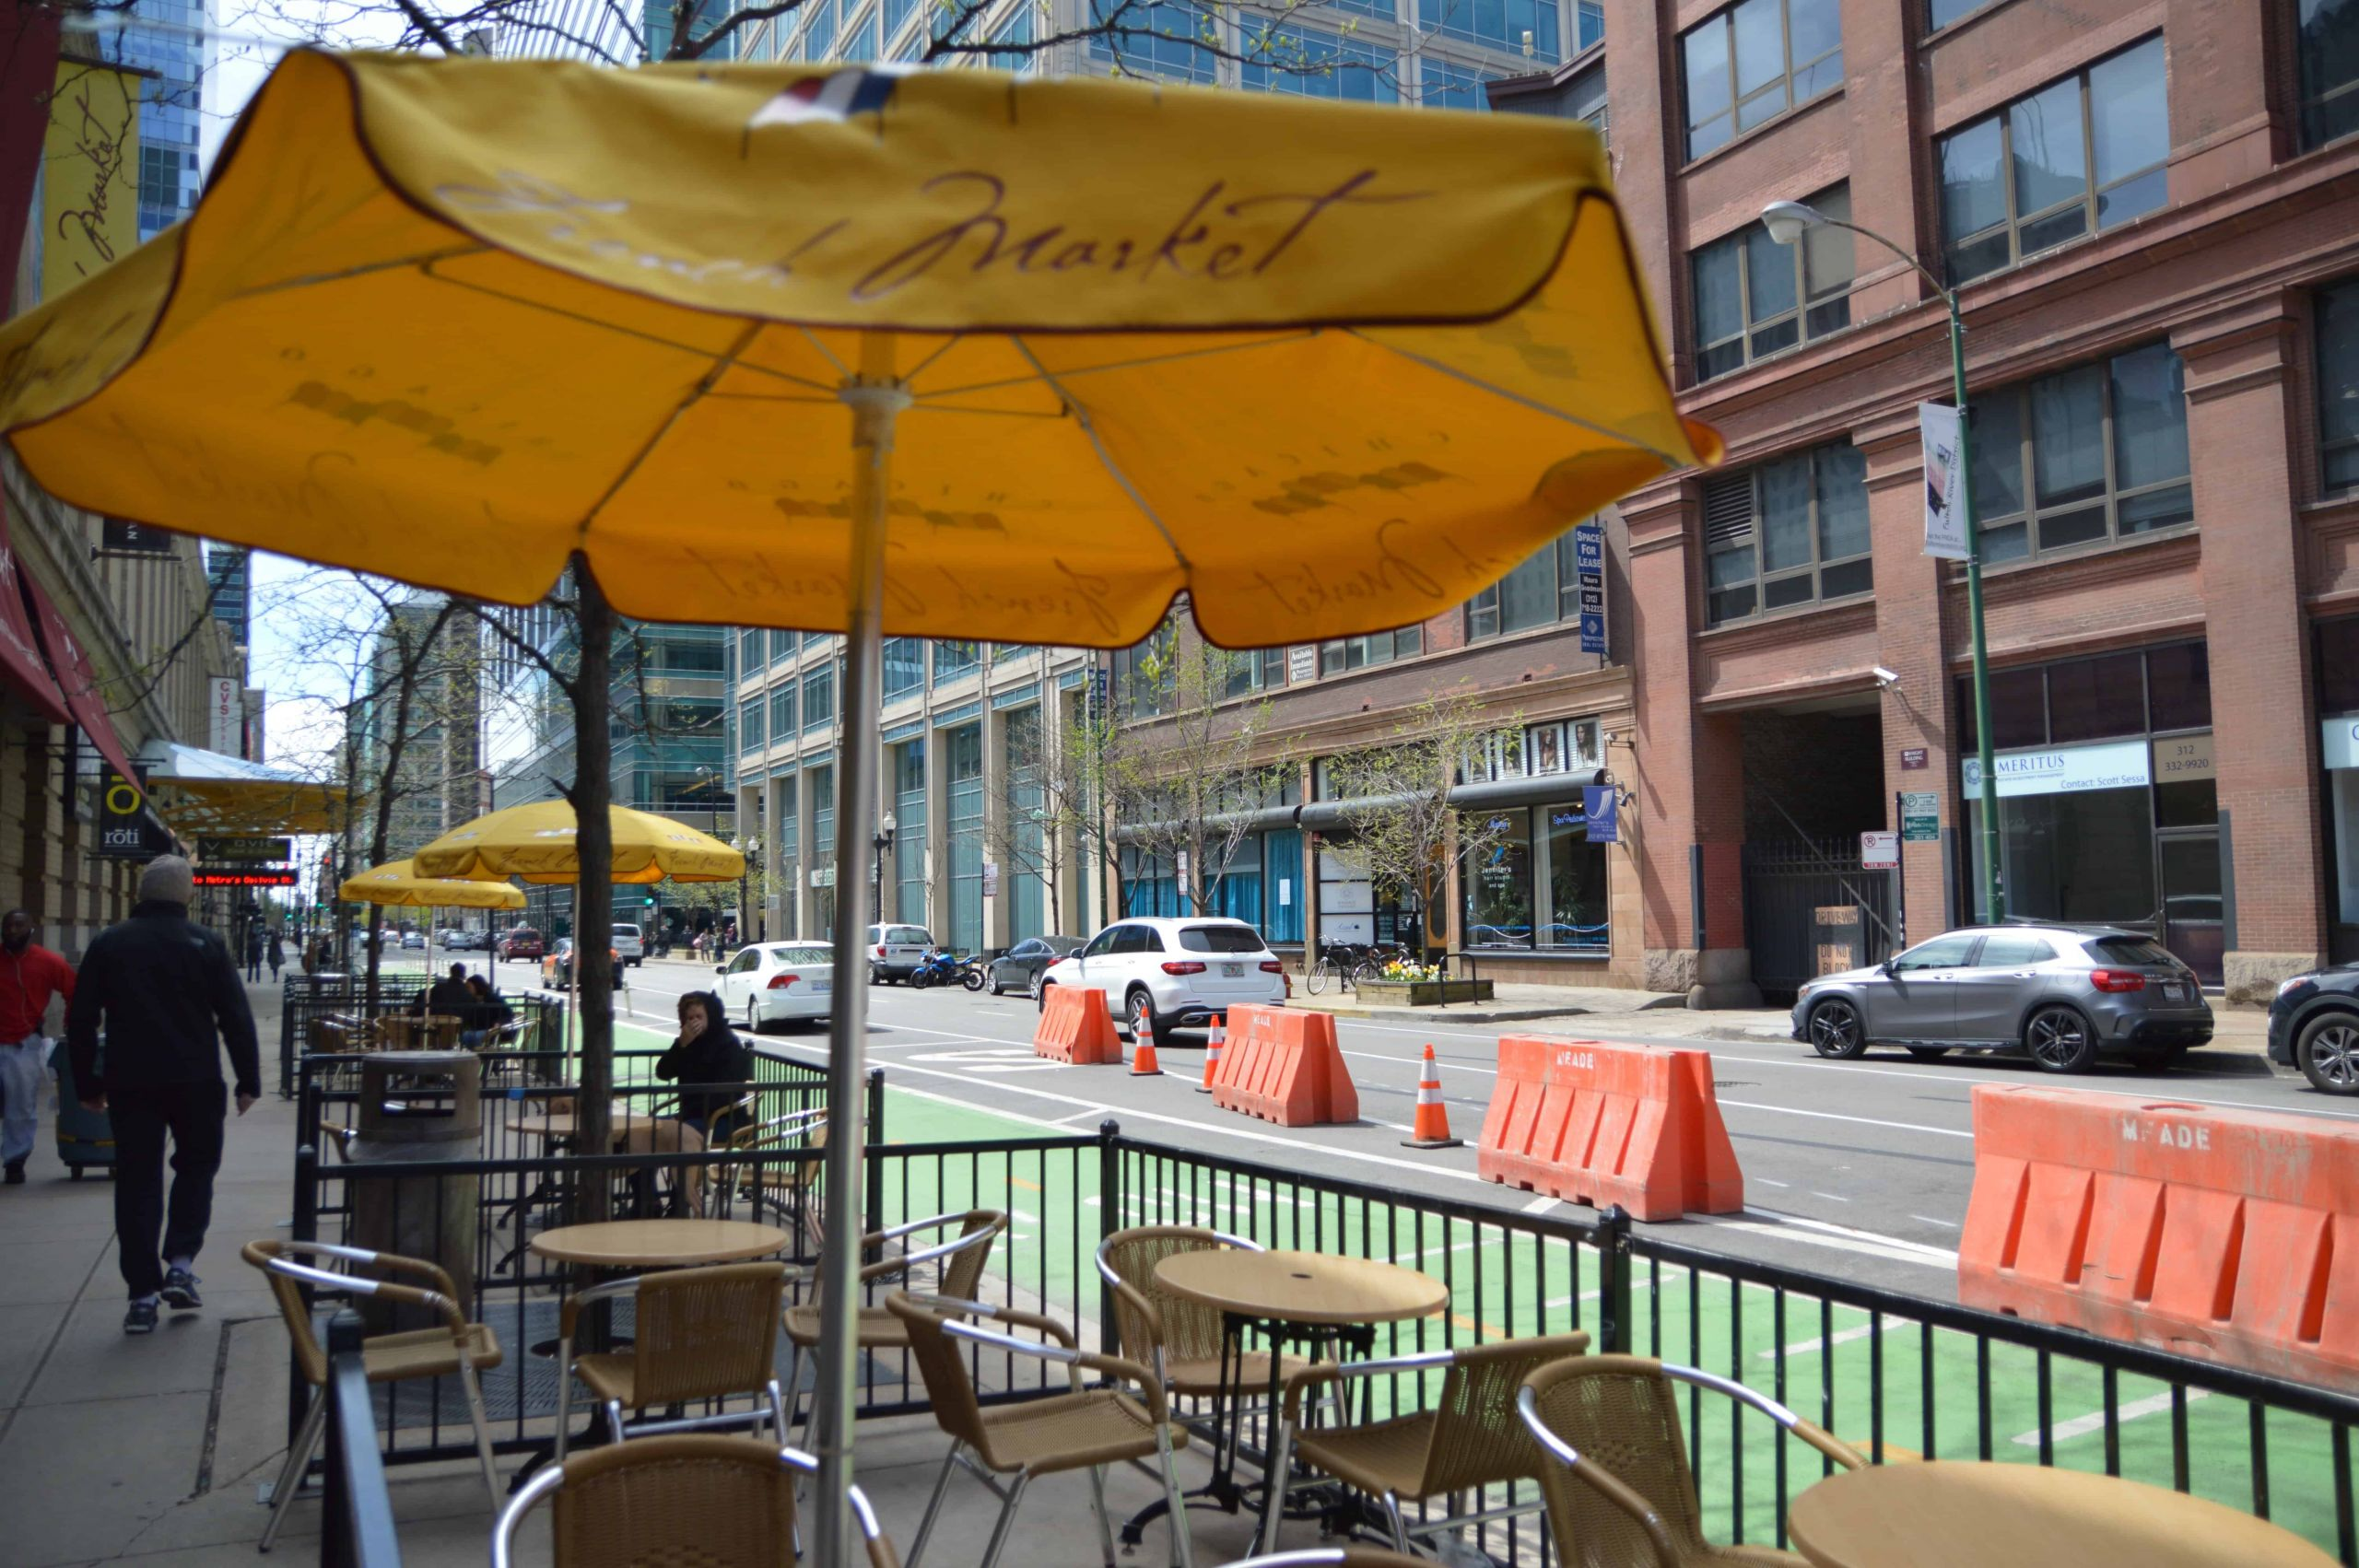 Outdoor Seating at the Chicago French Market